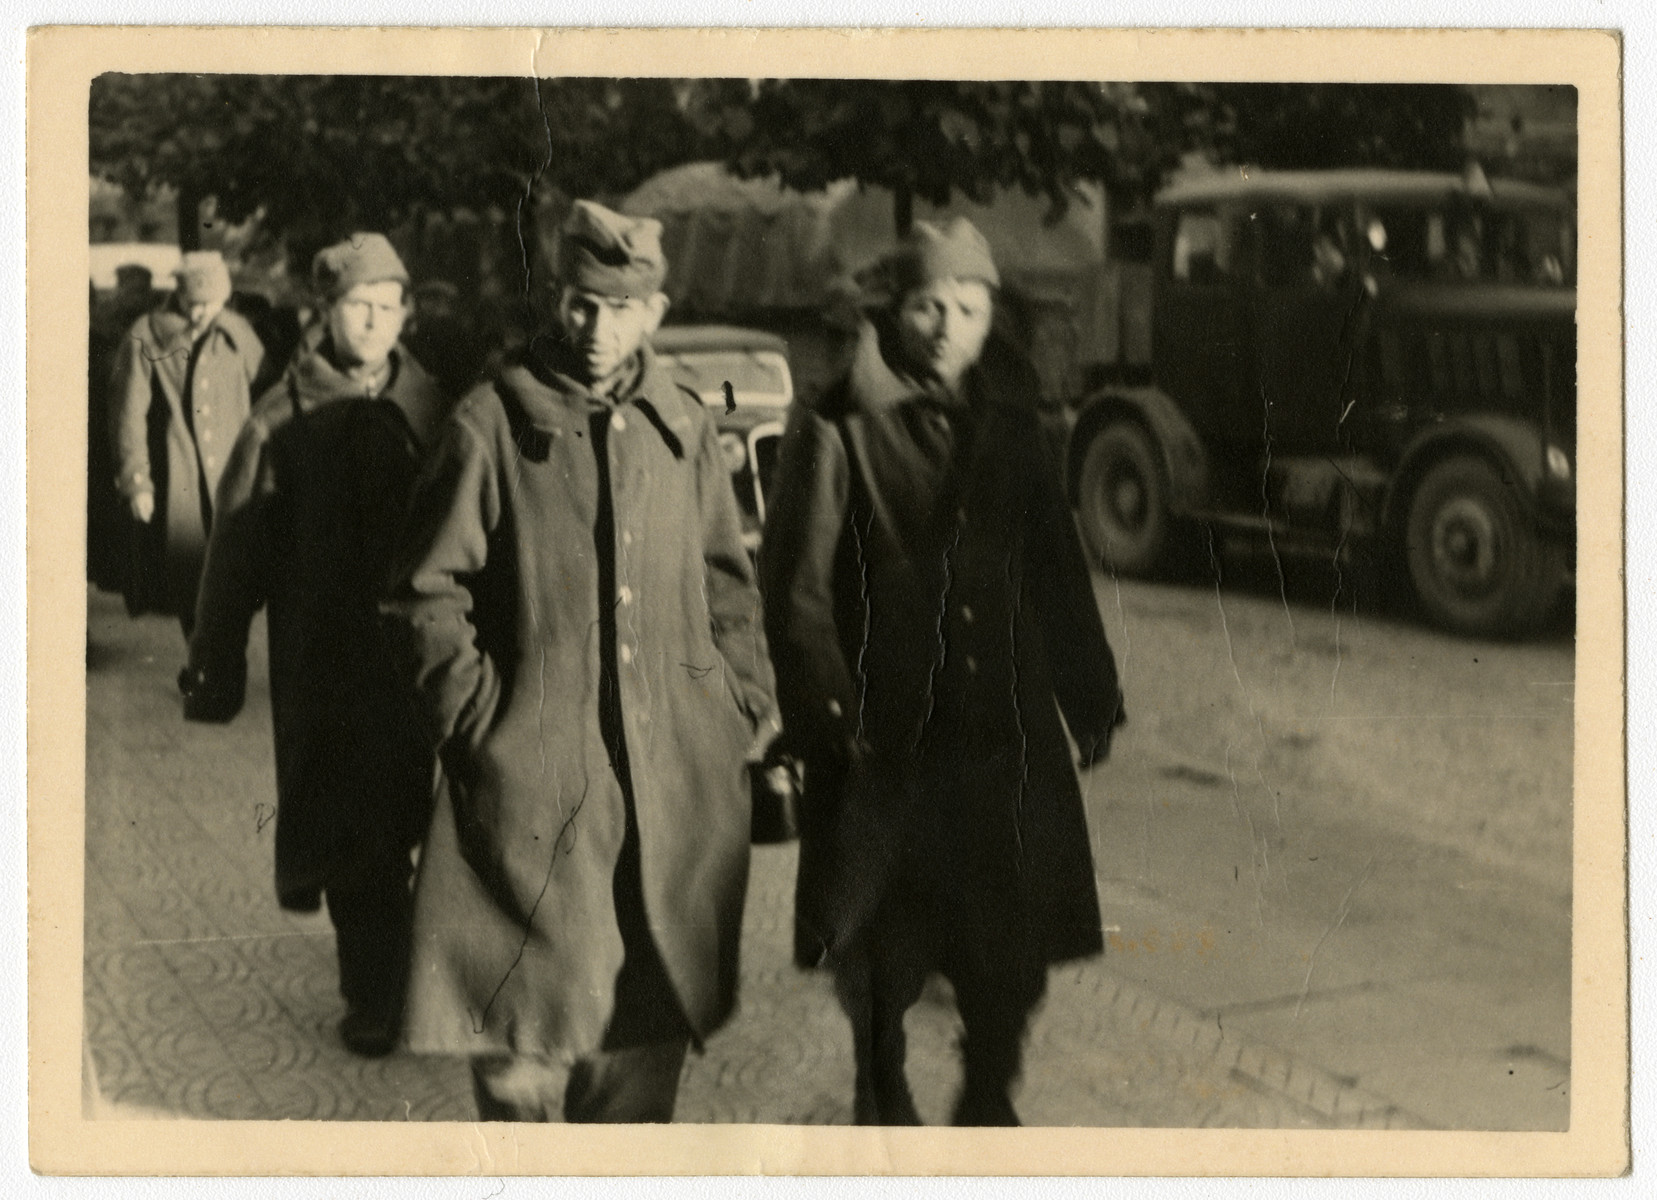 Polish soldiers, likely prisoners of war, walk in the middle of a city street.    This image is one of twenty-six contained in an album found by Jacob Igra in an apartment in Sosnowiec after the war. Many of the photographs are believed to have been taken by a soldier with the SD-SIPO (Sicherheitspolizei) following the invasion of Poland in 1939. Additional photographs depict einsatzgruppen activities at sites throughout Nazi occupied Eastern Europe and may have been later additions to the album.